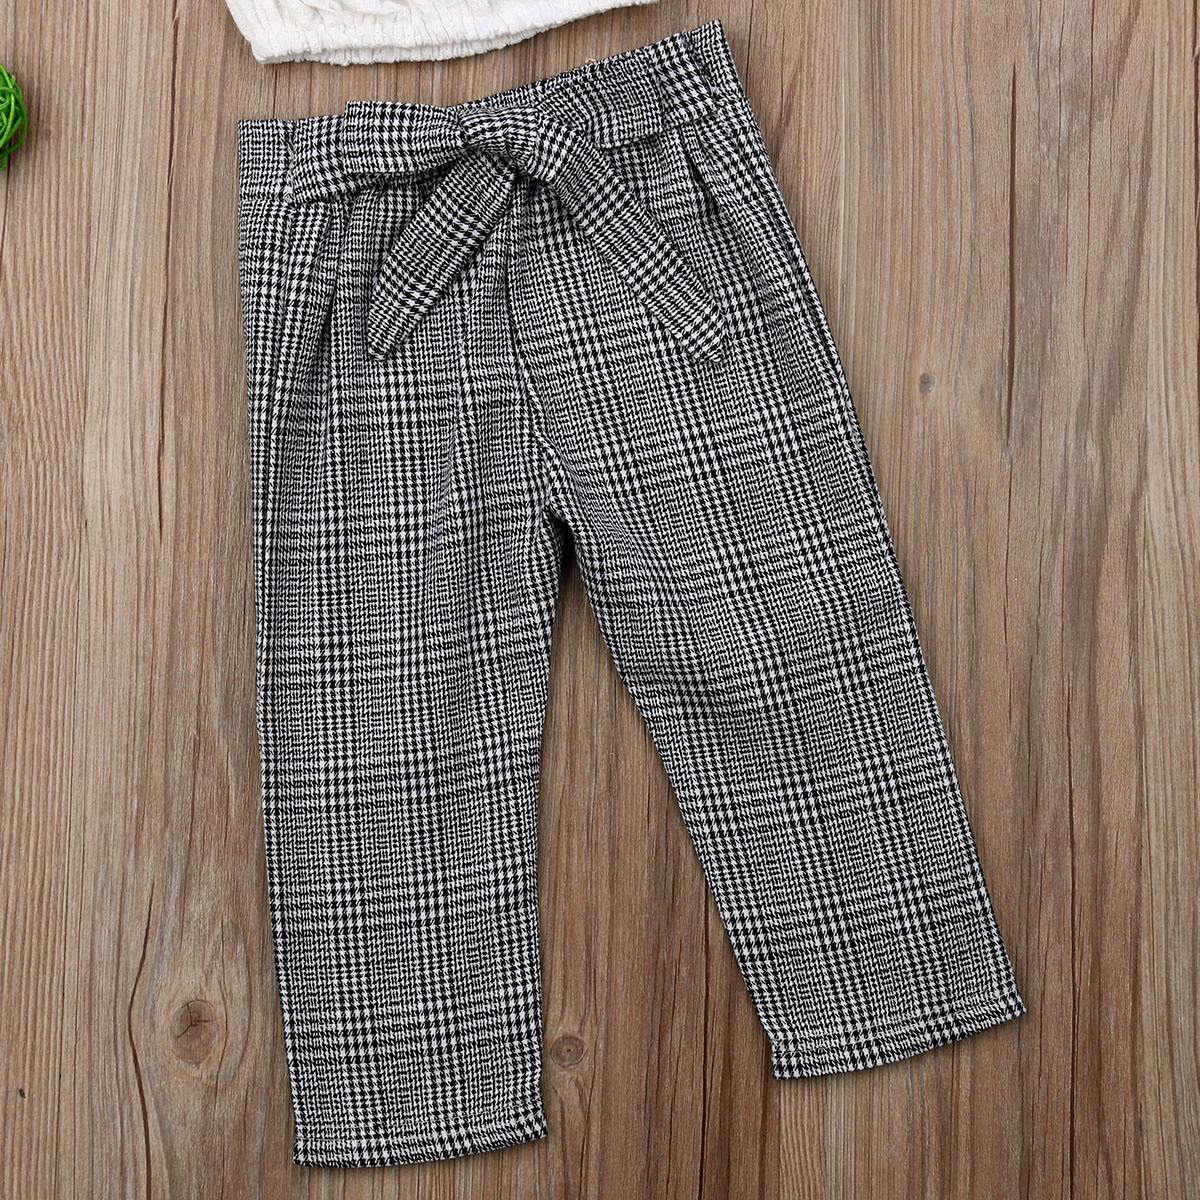 Cute Toddler Kid Baby Girl Summer Lace Tops Crop Plaid Long Pants Outfit Sunsuit